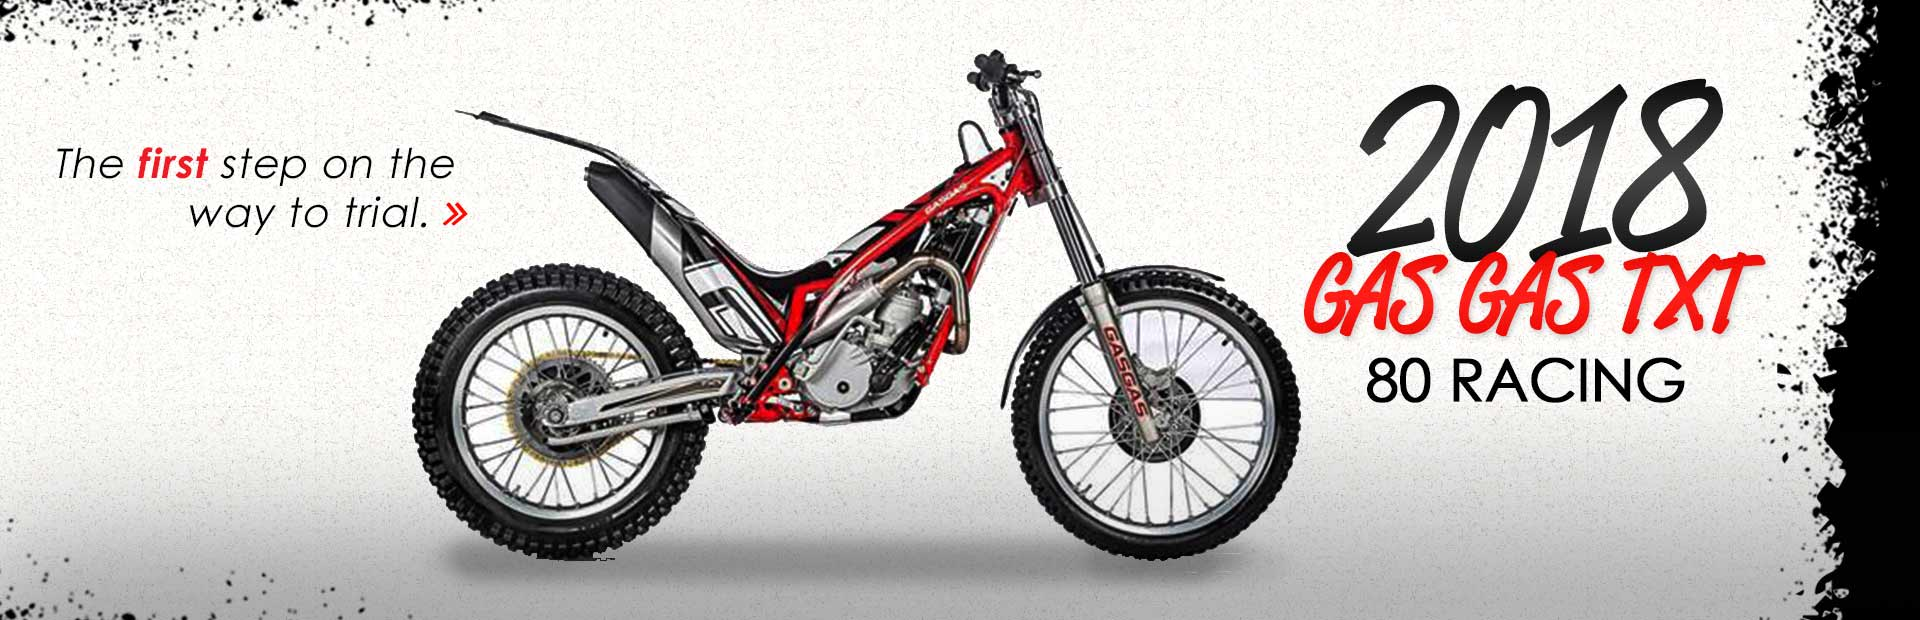 2018 GasGas TXT 80 Racing: Click here to view the model.